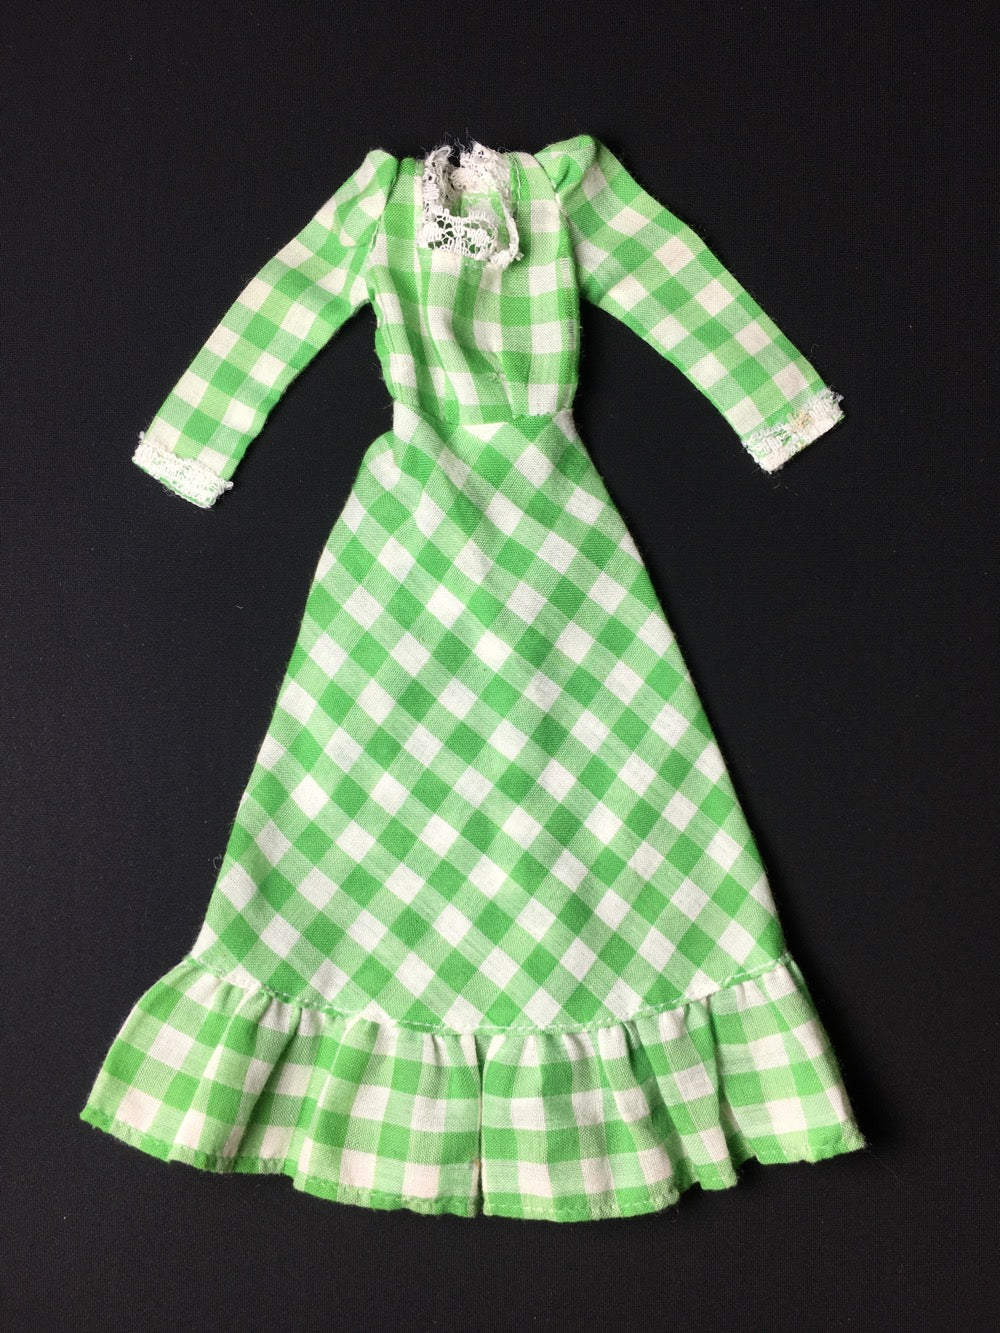 Sindy Barn Dance dress 1978 Pedigree 442713 green gingham check